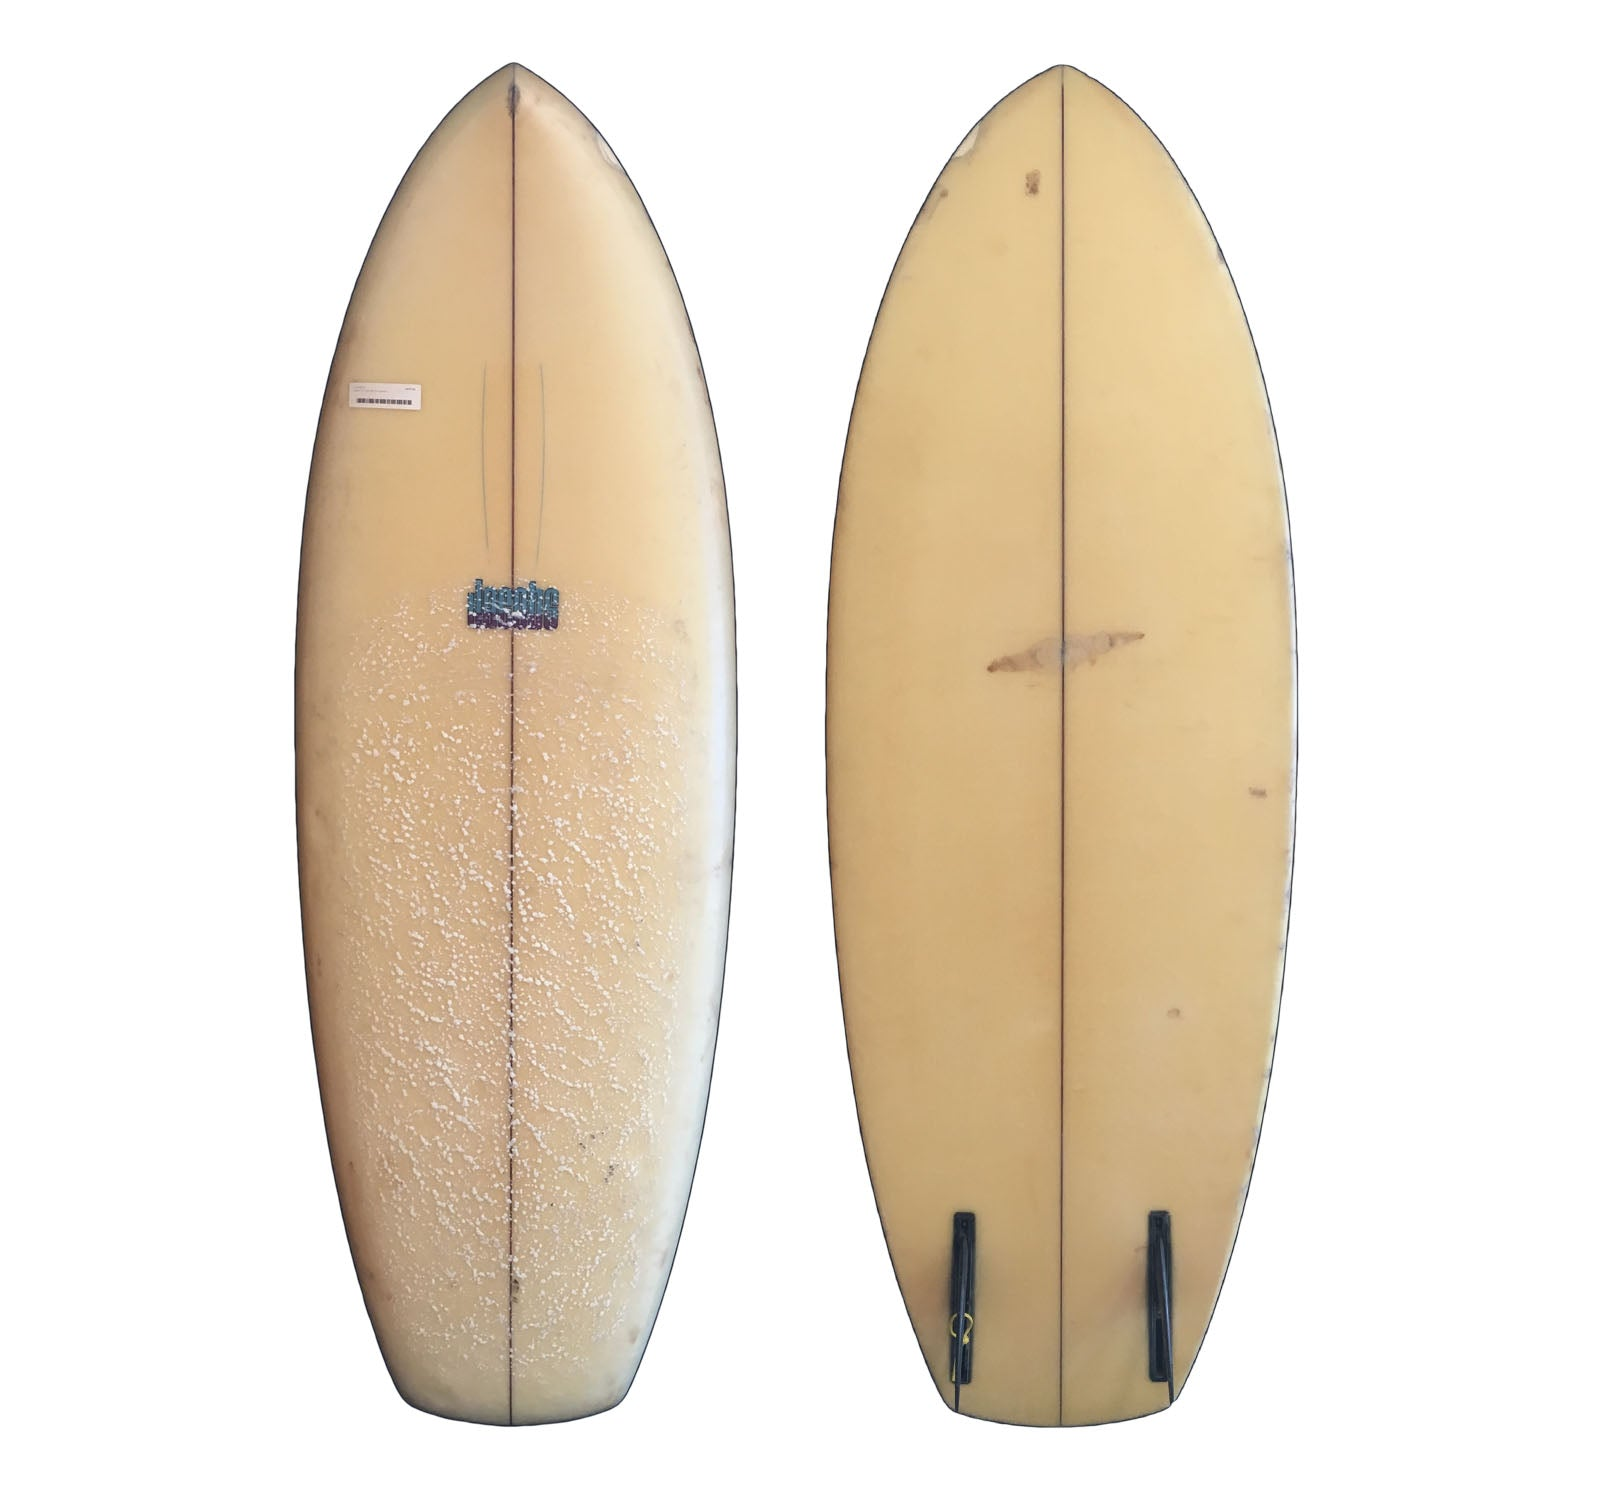 Jacobs Twin Fin 5'10 Collector Surfboard